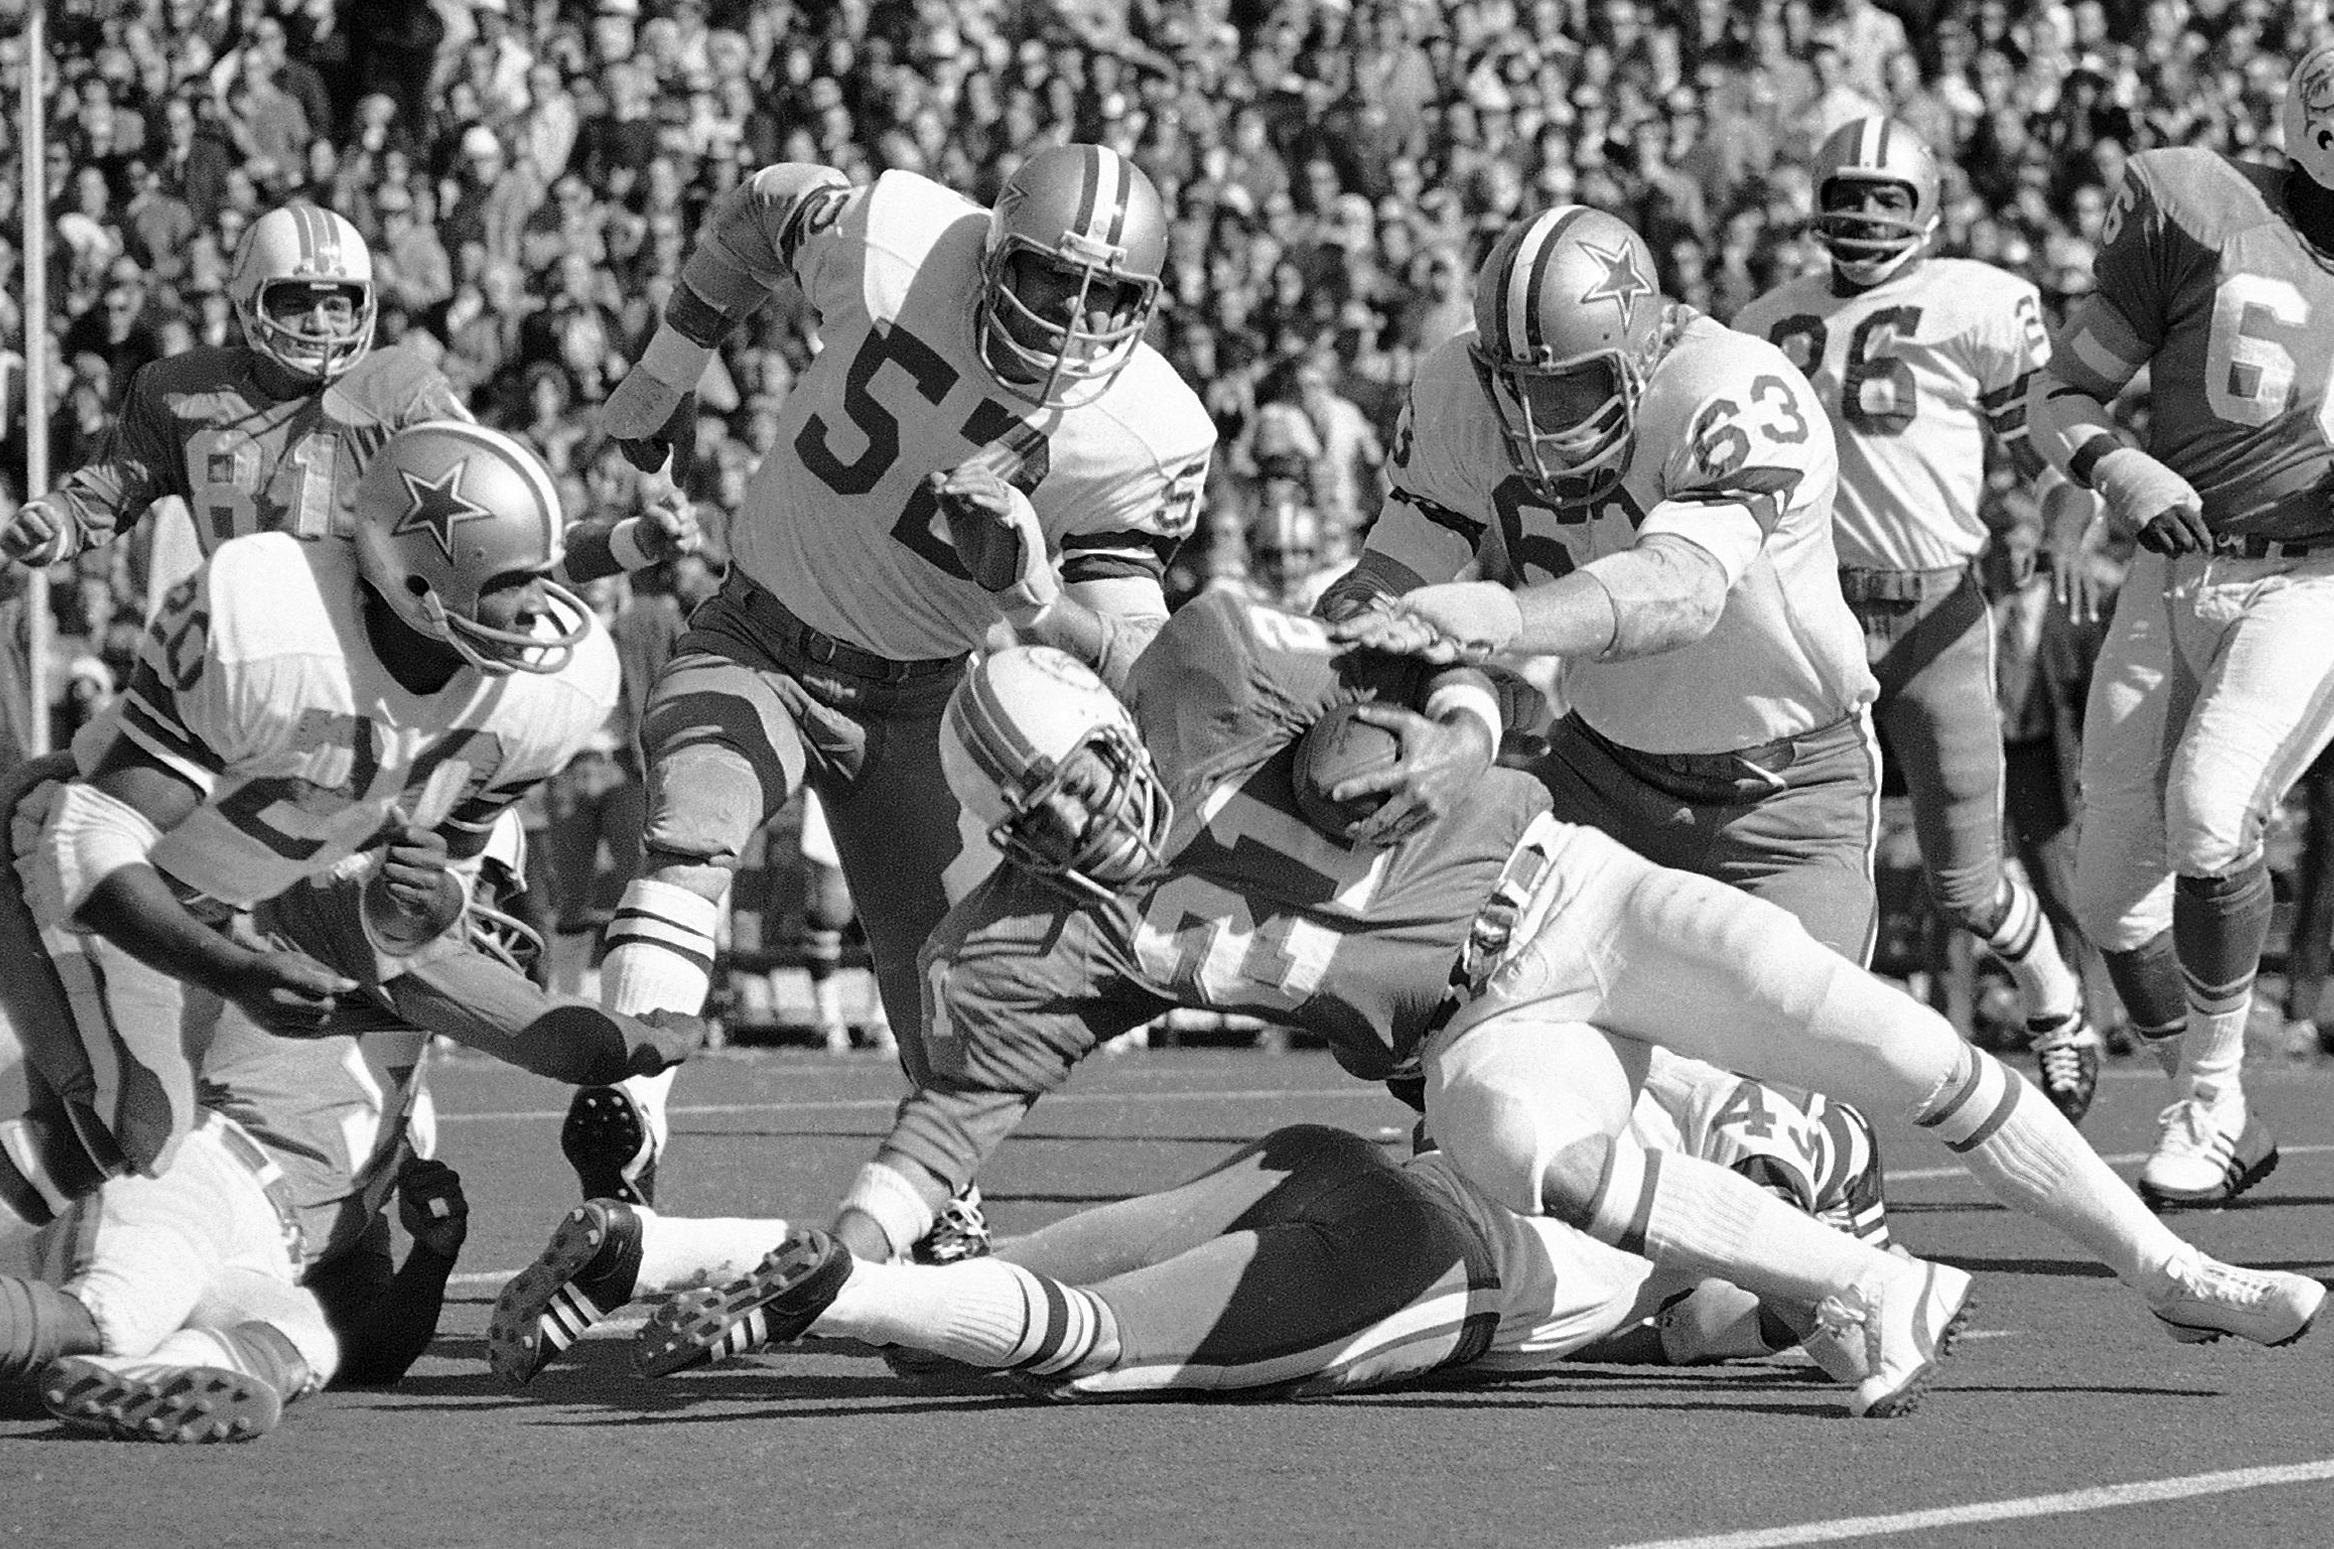 FILE - In this Jan. 16, 1972 file photo, Miami running back Jim Kiick (21) is brought down by Dallas tacklers after picking up a short game during first quarter of the Super Bowl football game in New Orleans. Also shown are Dallas Cowboys players Dave Edw